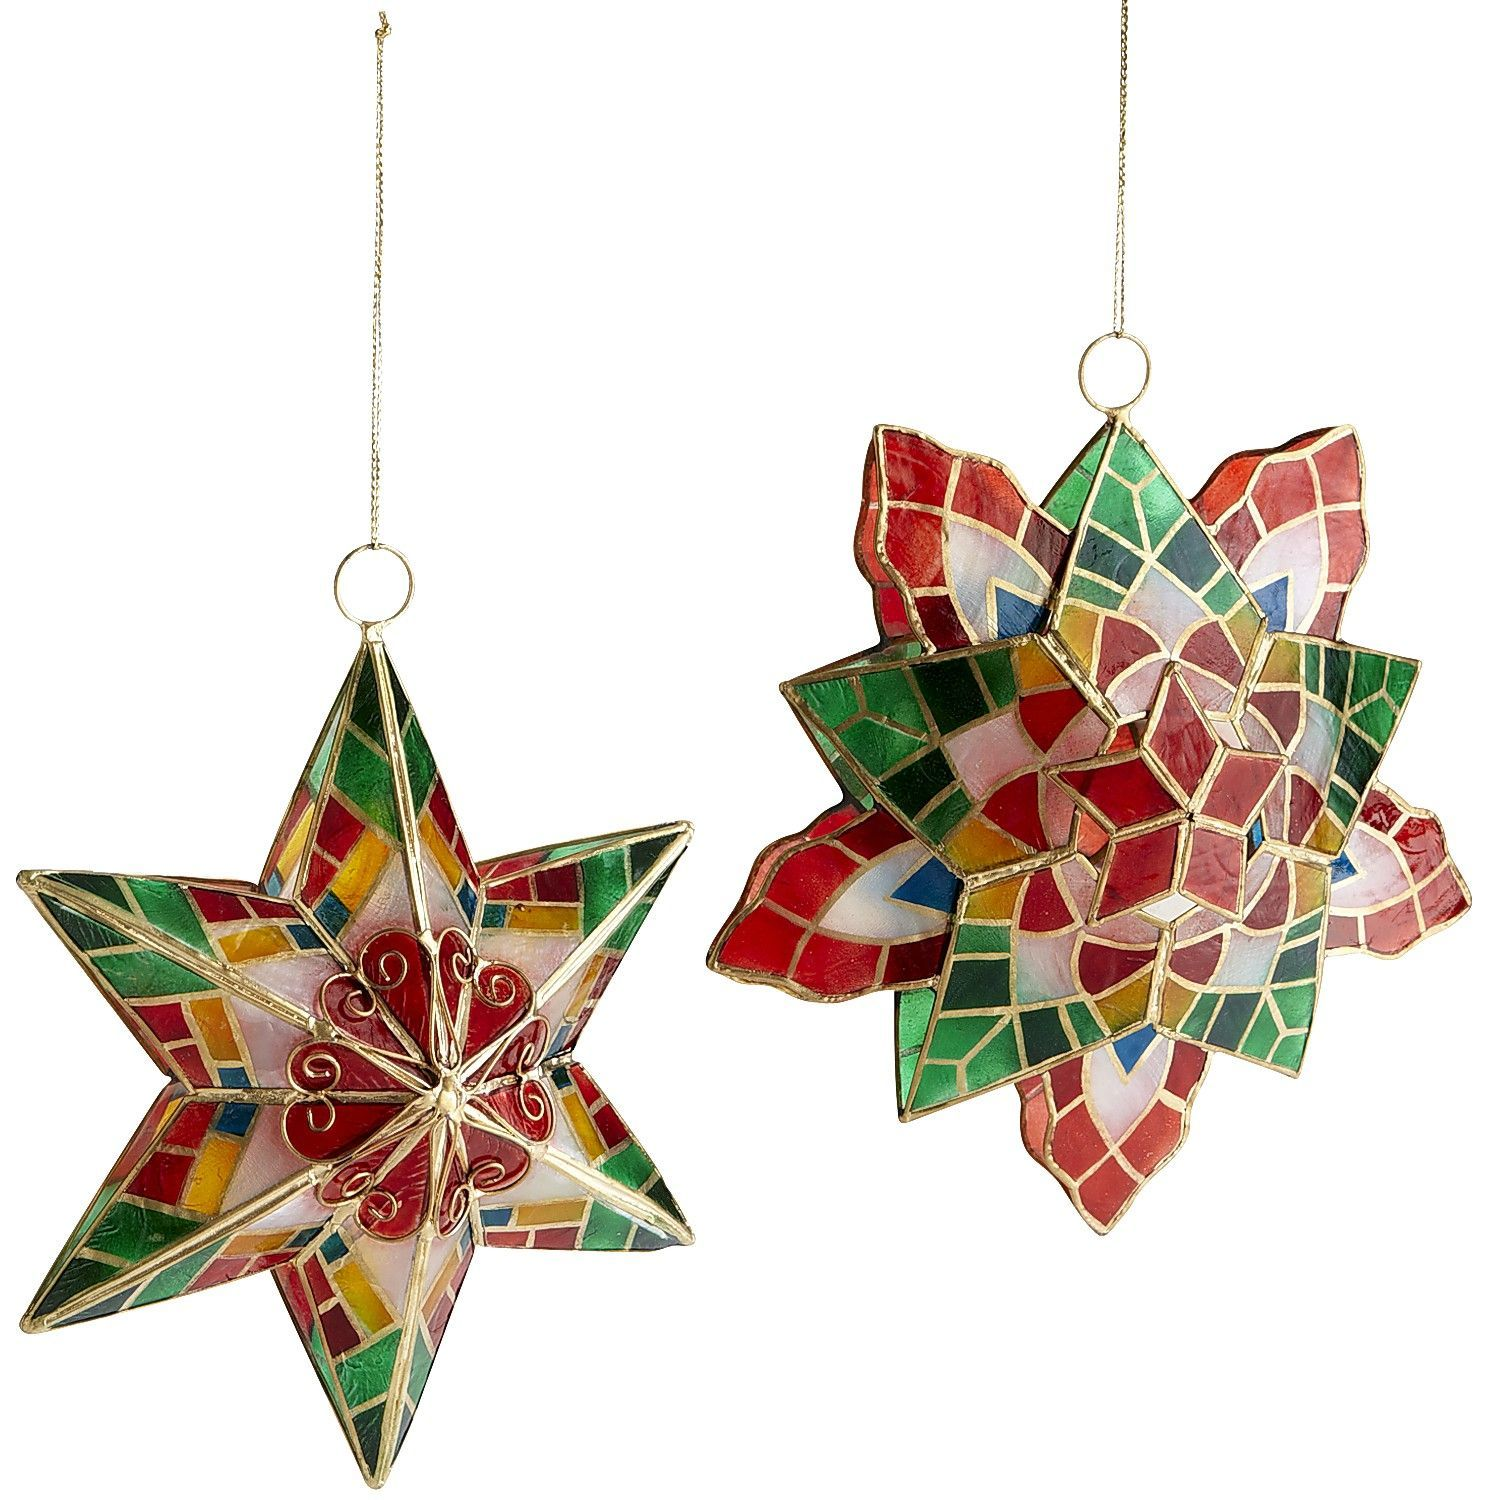 Capiz Shell Christmas Lantern (parol) Display At The Philippine Center   Rose2carmel  Pinterest  Philippines, Shell And Display